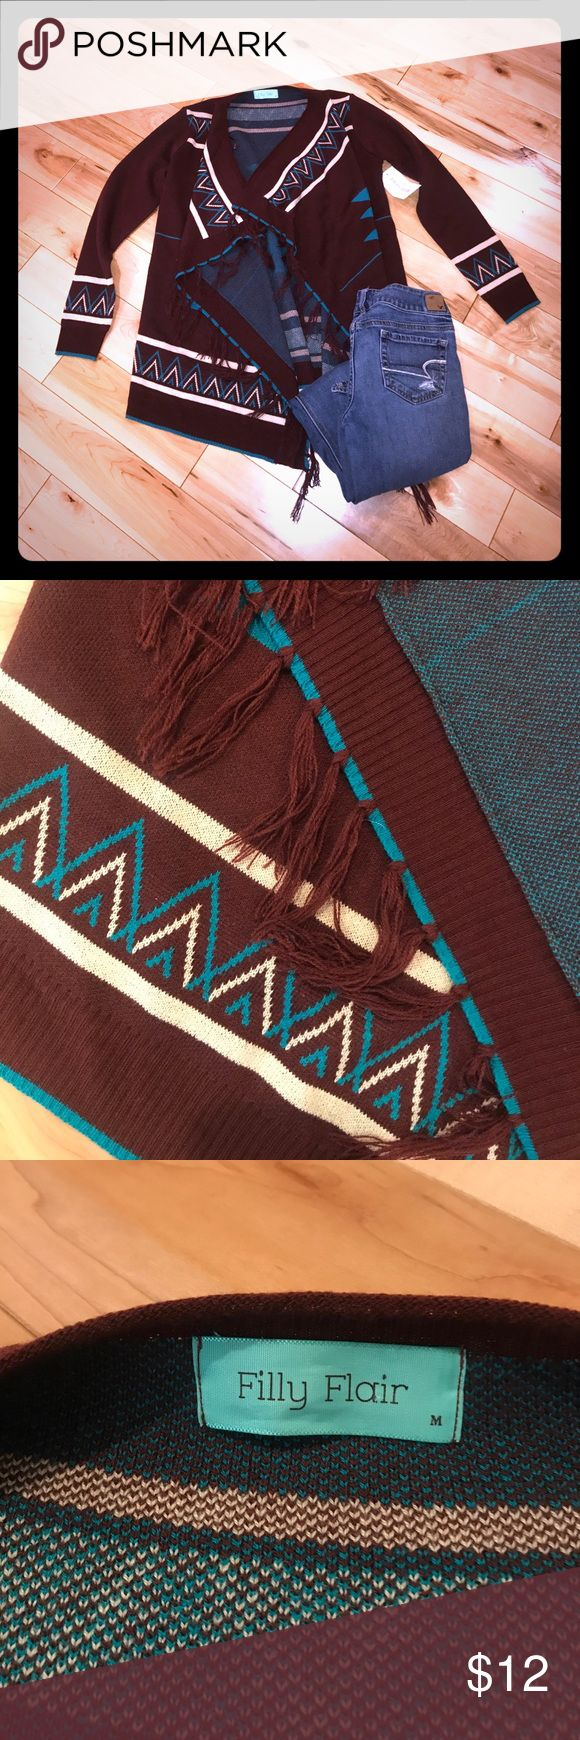 NWT Filly Flair Long-sleeve Asymmetrical Sweater Filly Flair Long-sleeve Asymmetrical Sweater w/ tassels - Burgundy with Cream and Blue Aztec Design Filly Flair Sweaters Cardigans